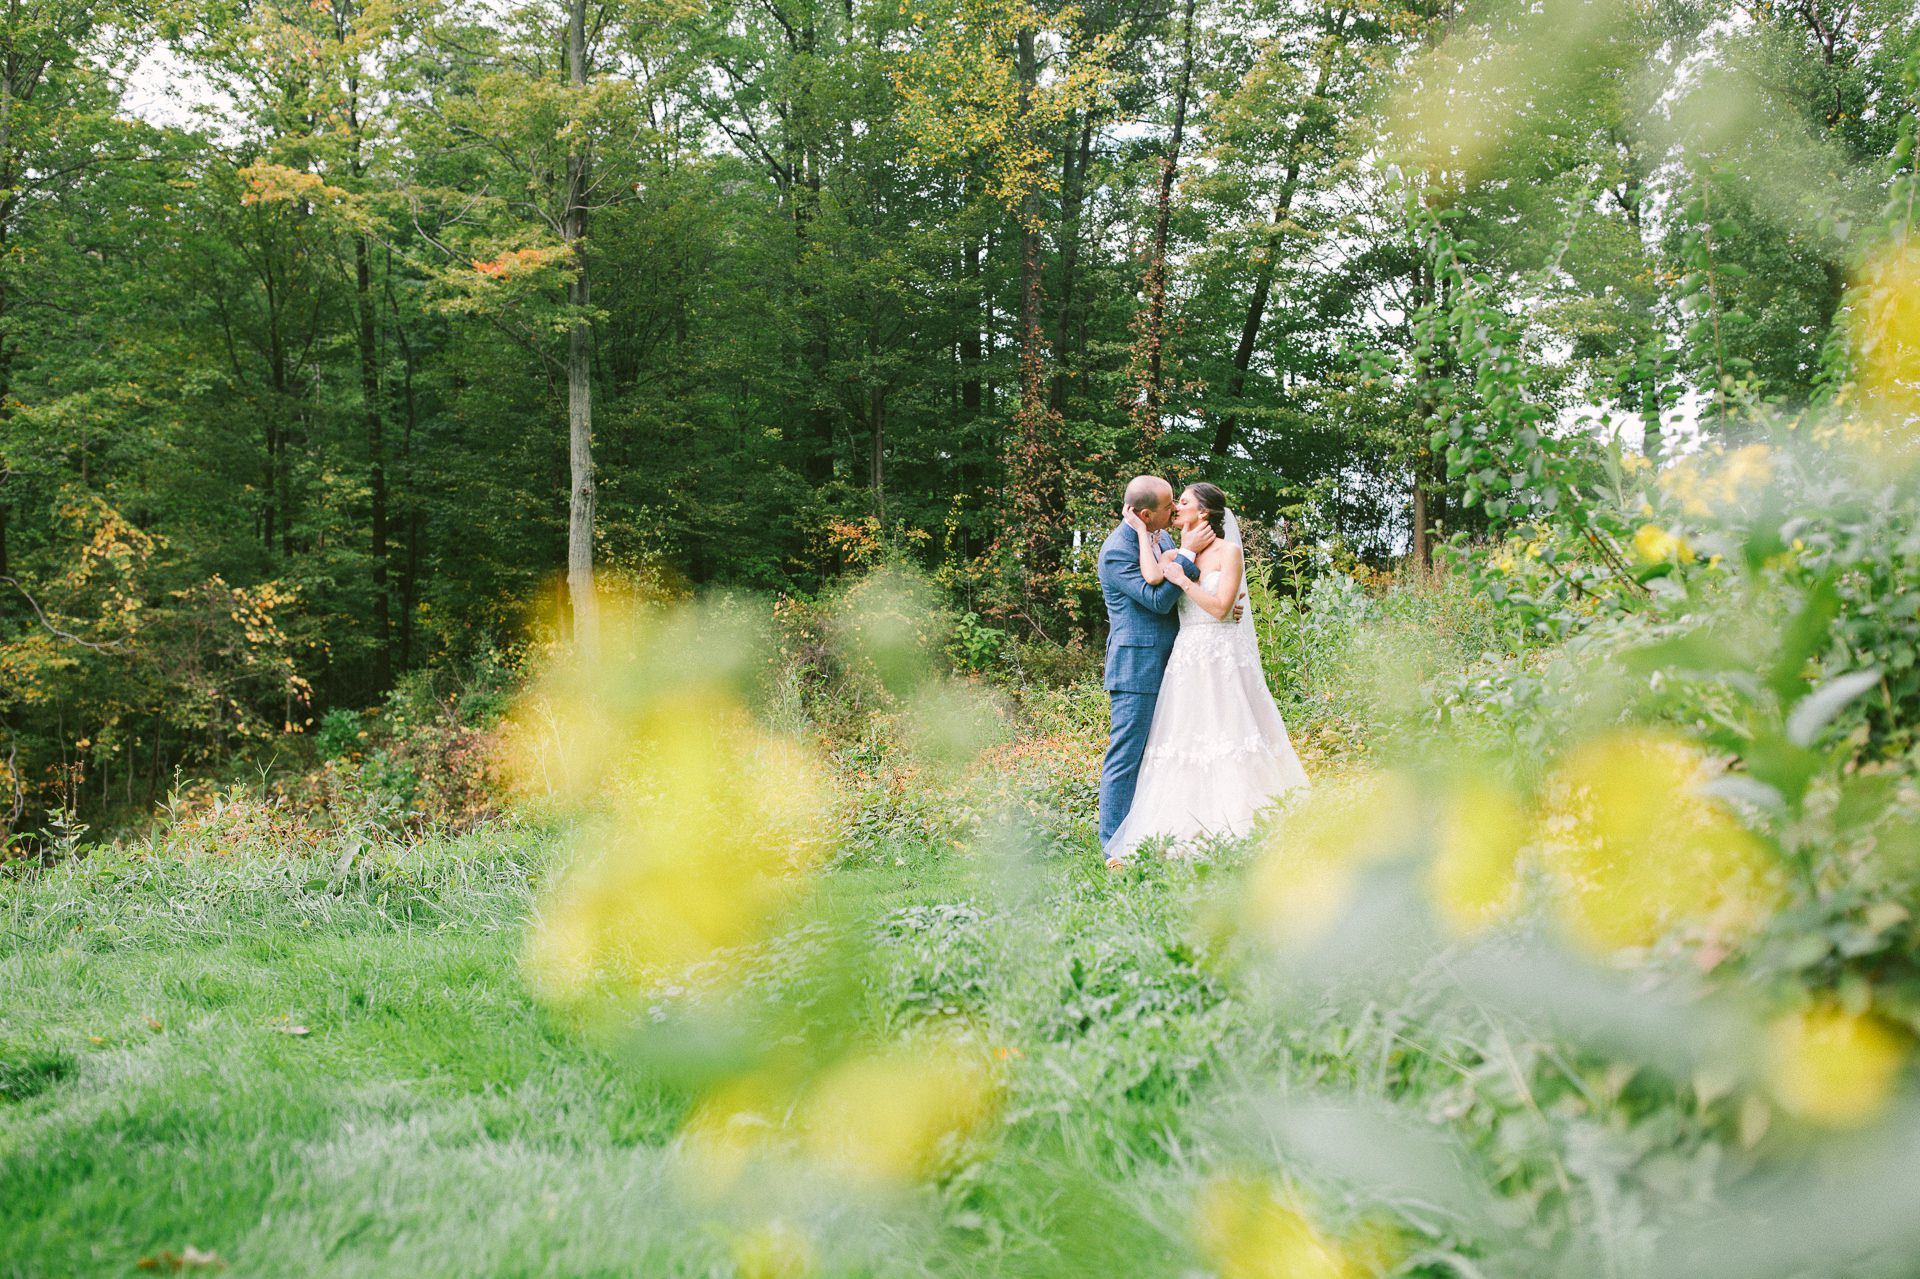 Wedding at Kirtland Country Club in Willoughby 2 23.jpg